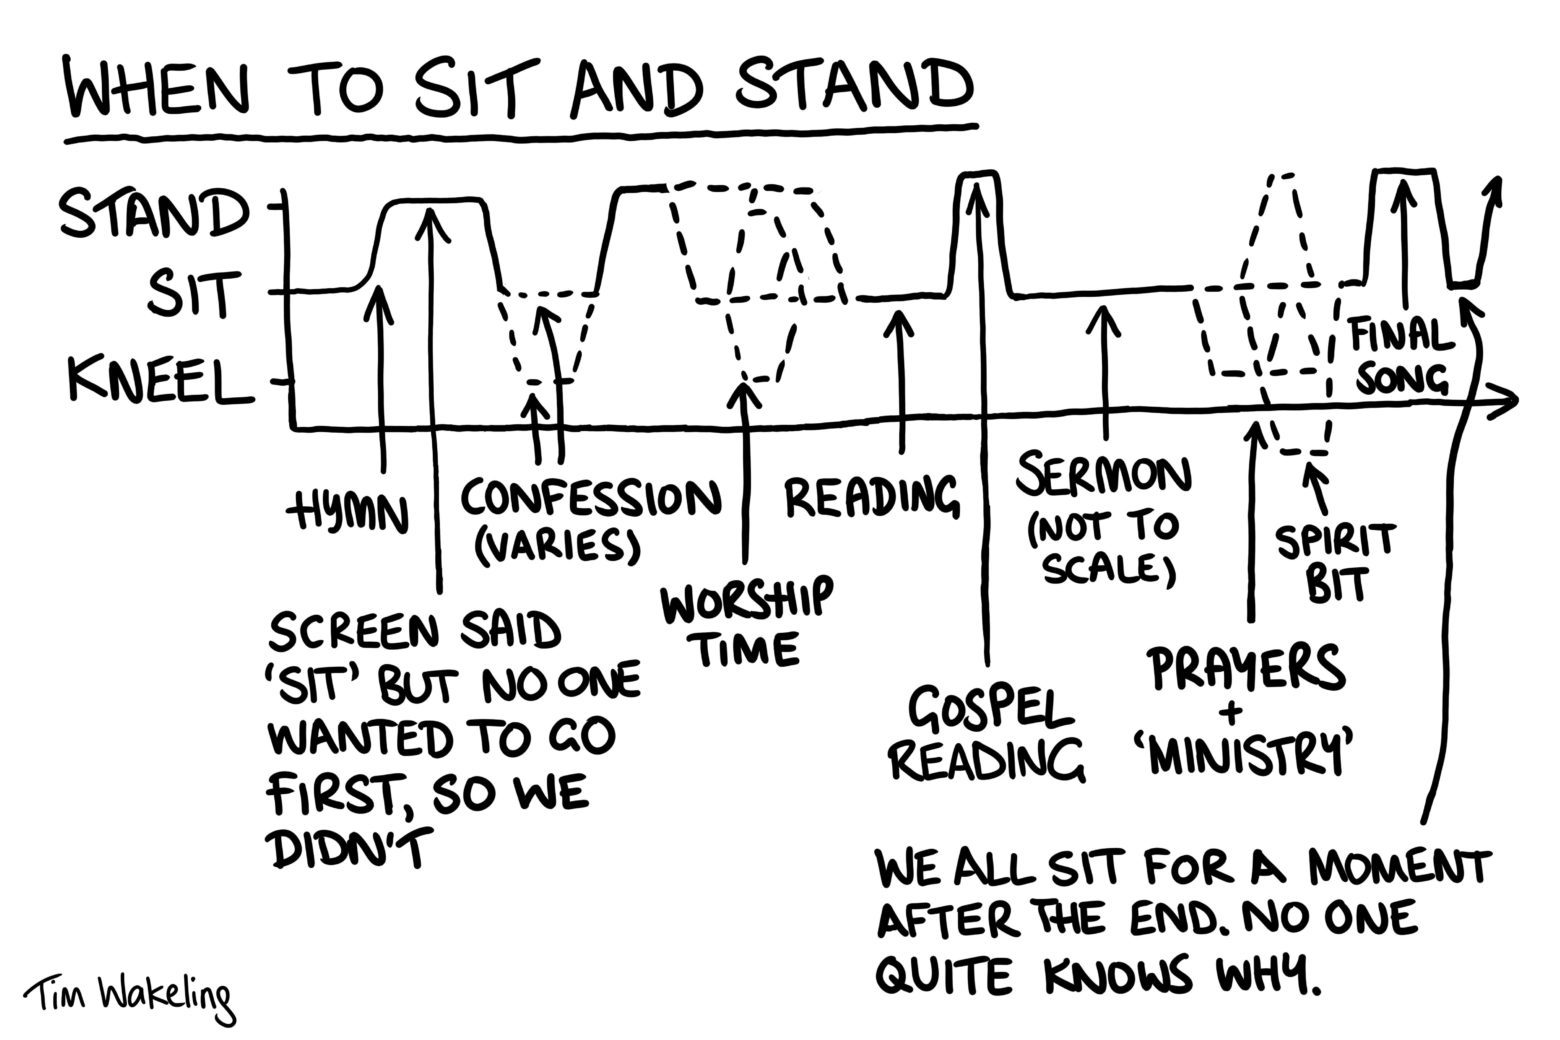 When to sit and stand